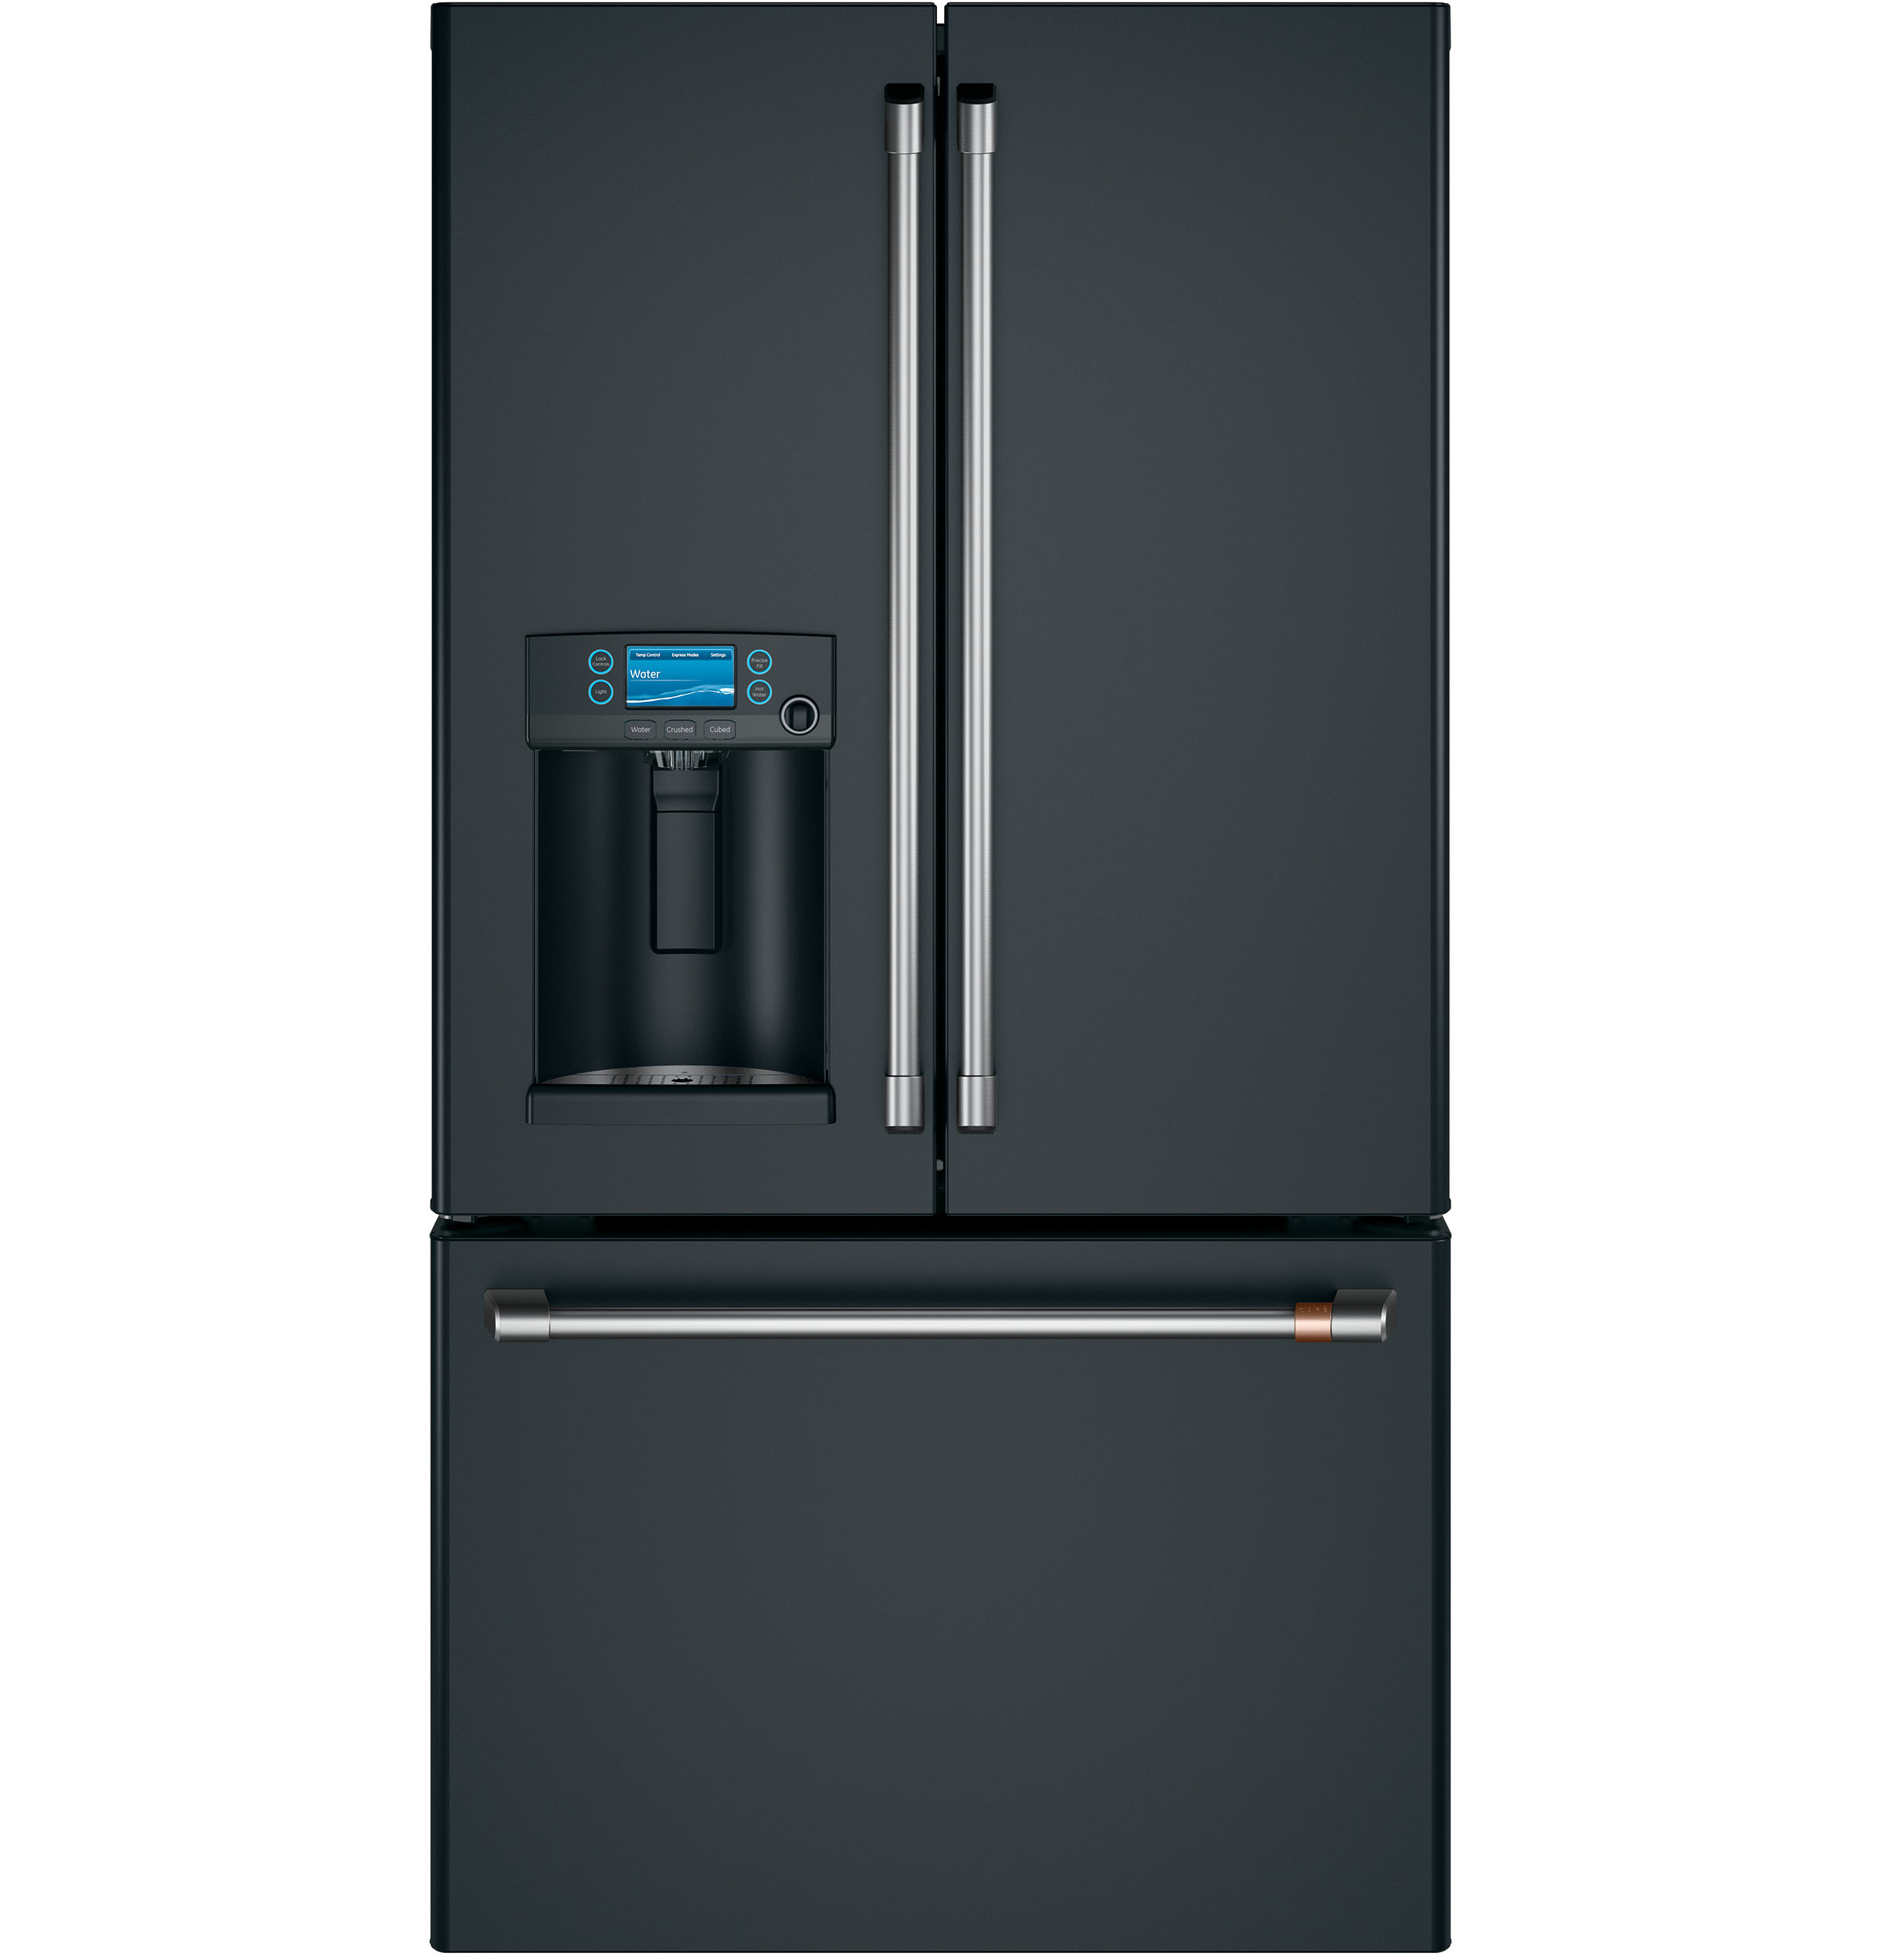 Model: CFE28TP3MD1 | Cafe Café™ ENERGY STAR® 27.8 Cu. Ft. Smart French-Door Refrigerator with Hot Water Dispenser